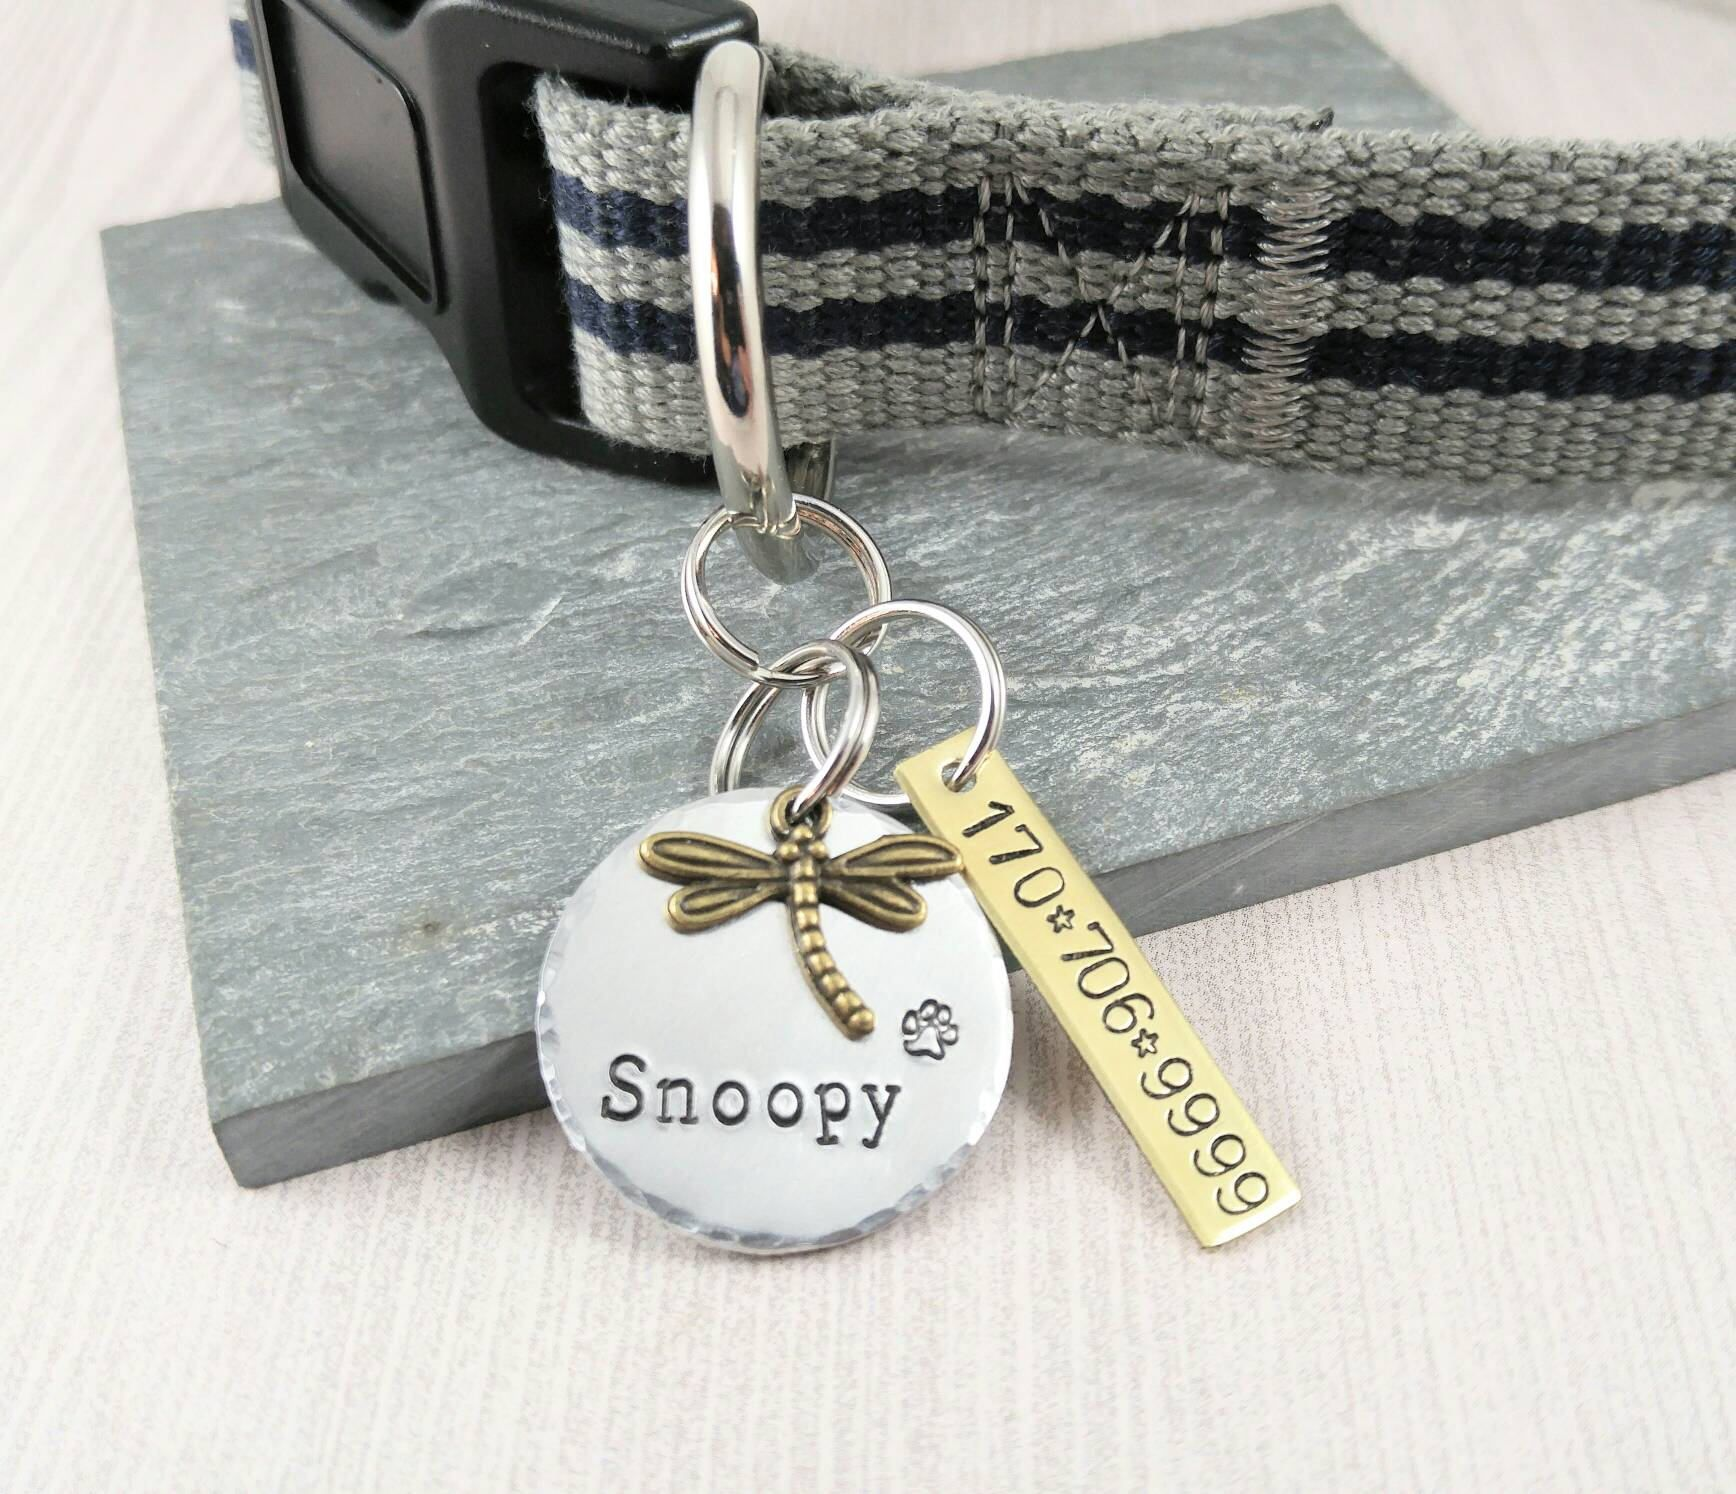 Dog tags personalized dog tags for dogs dog owner gifts